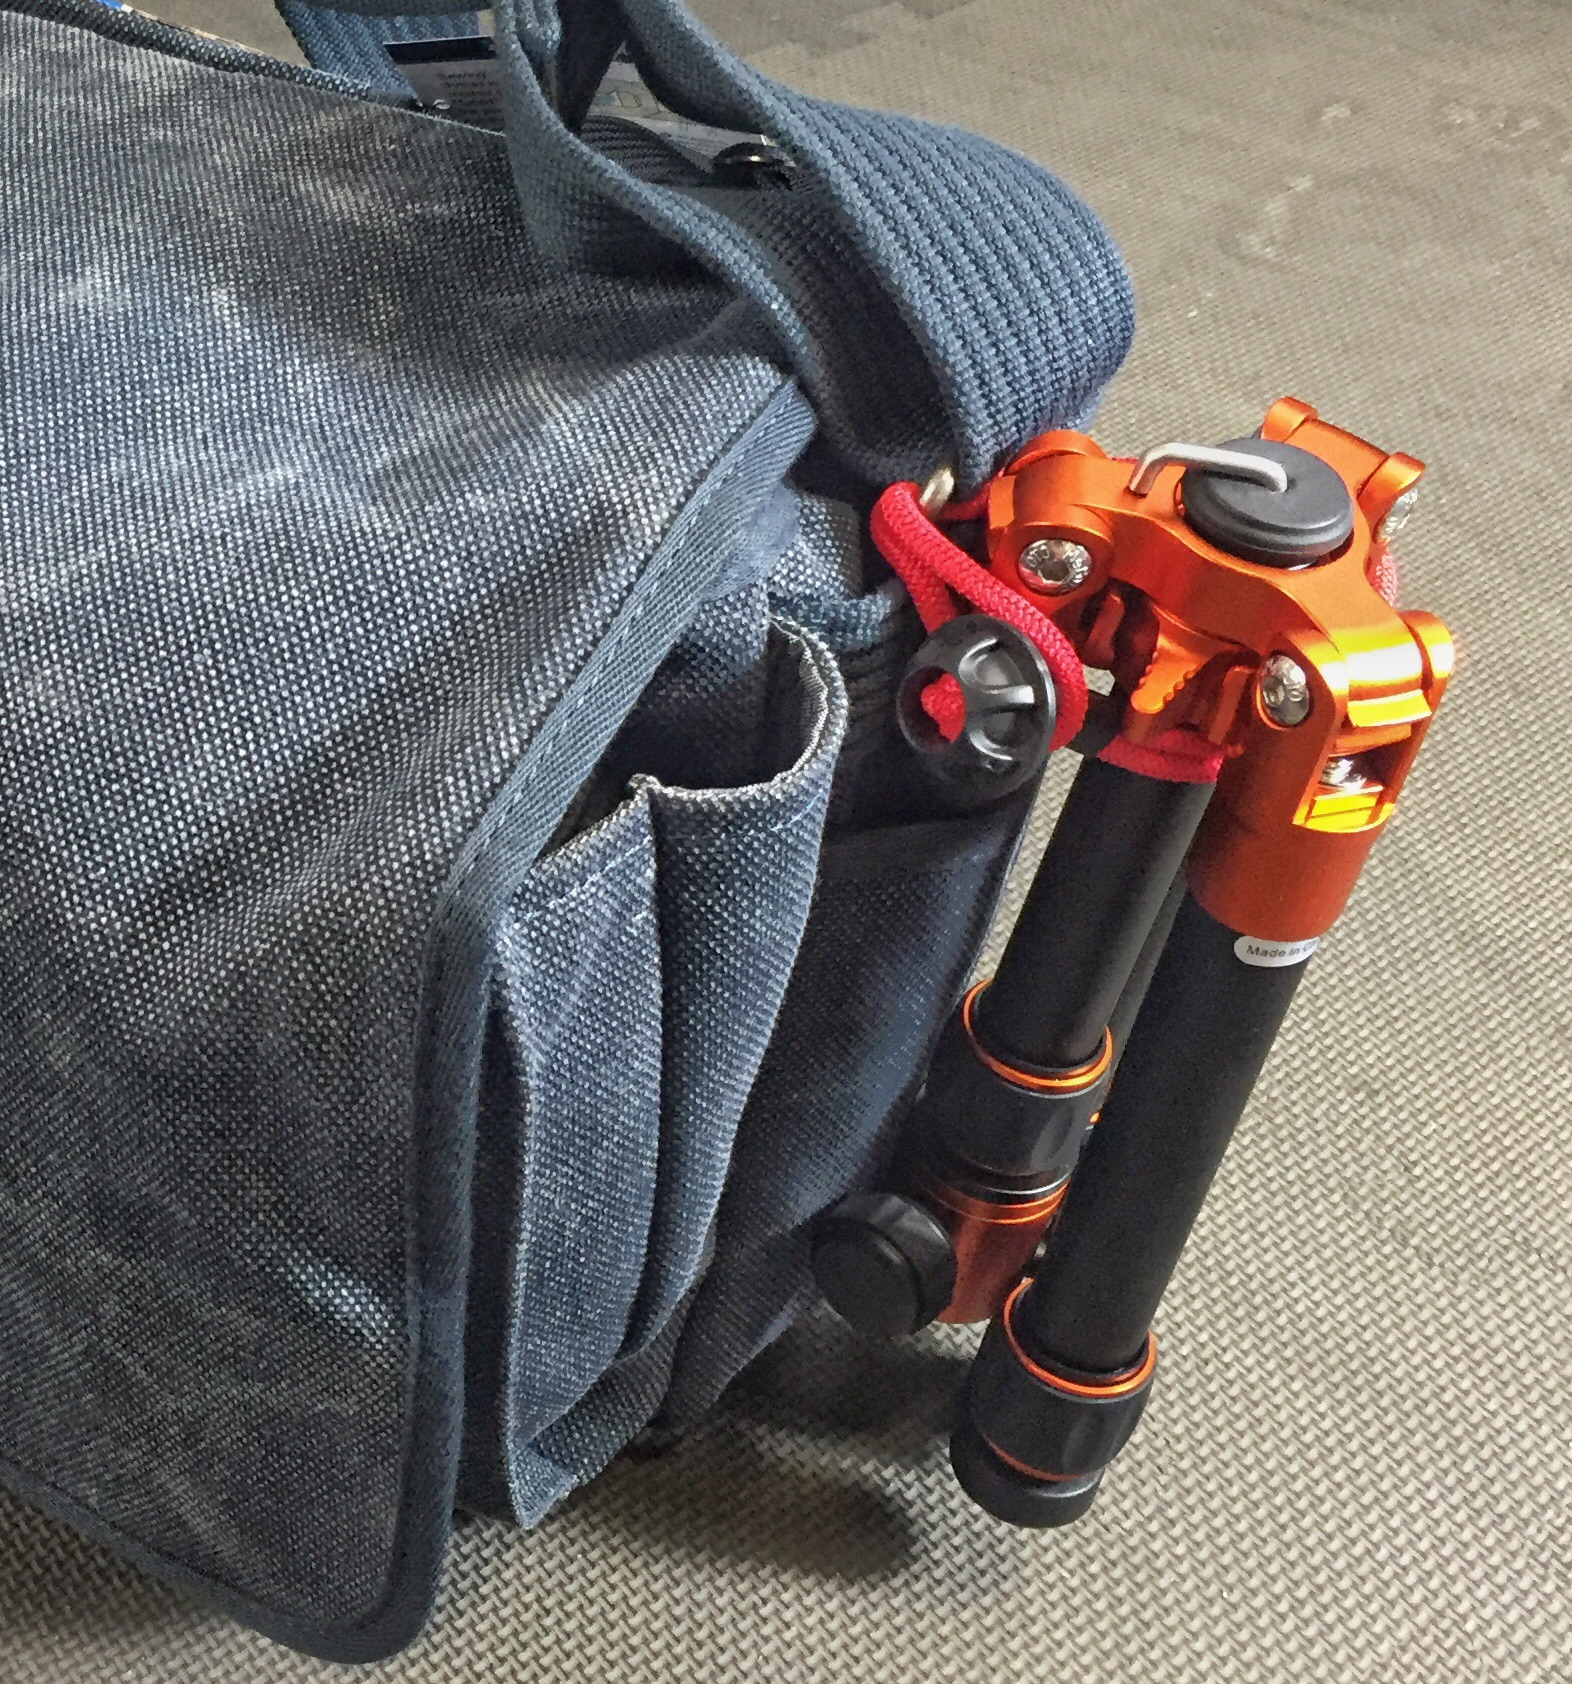 MeFoto DayTrip can be easily attached to your bag!